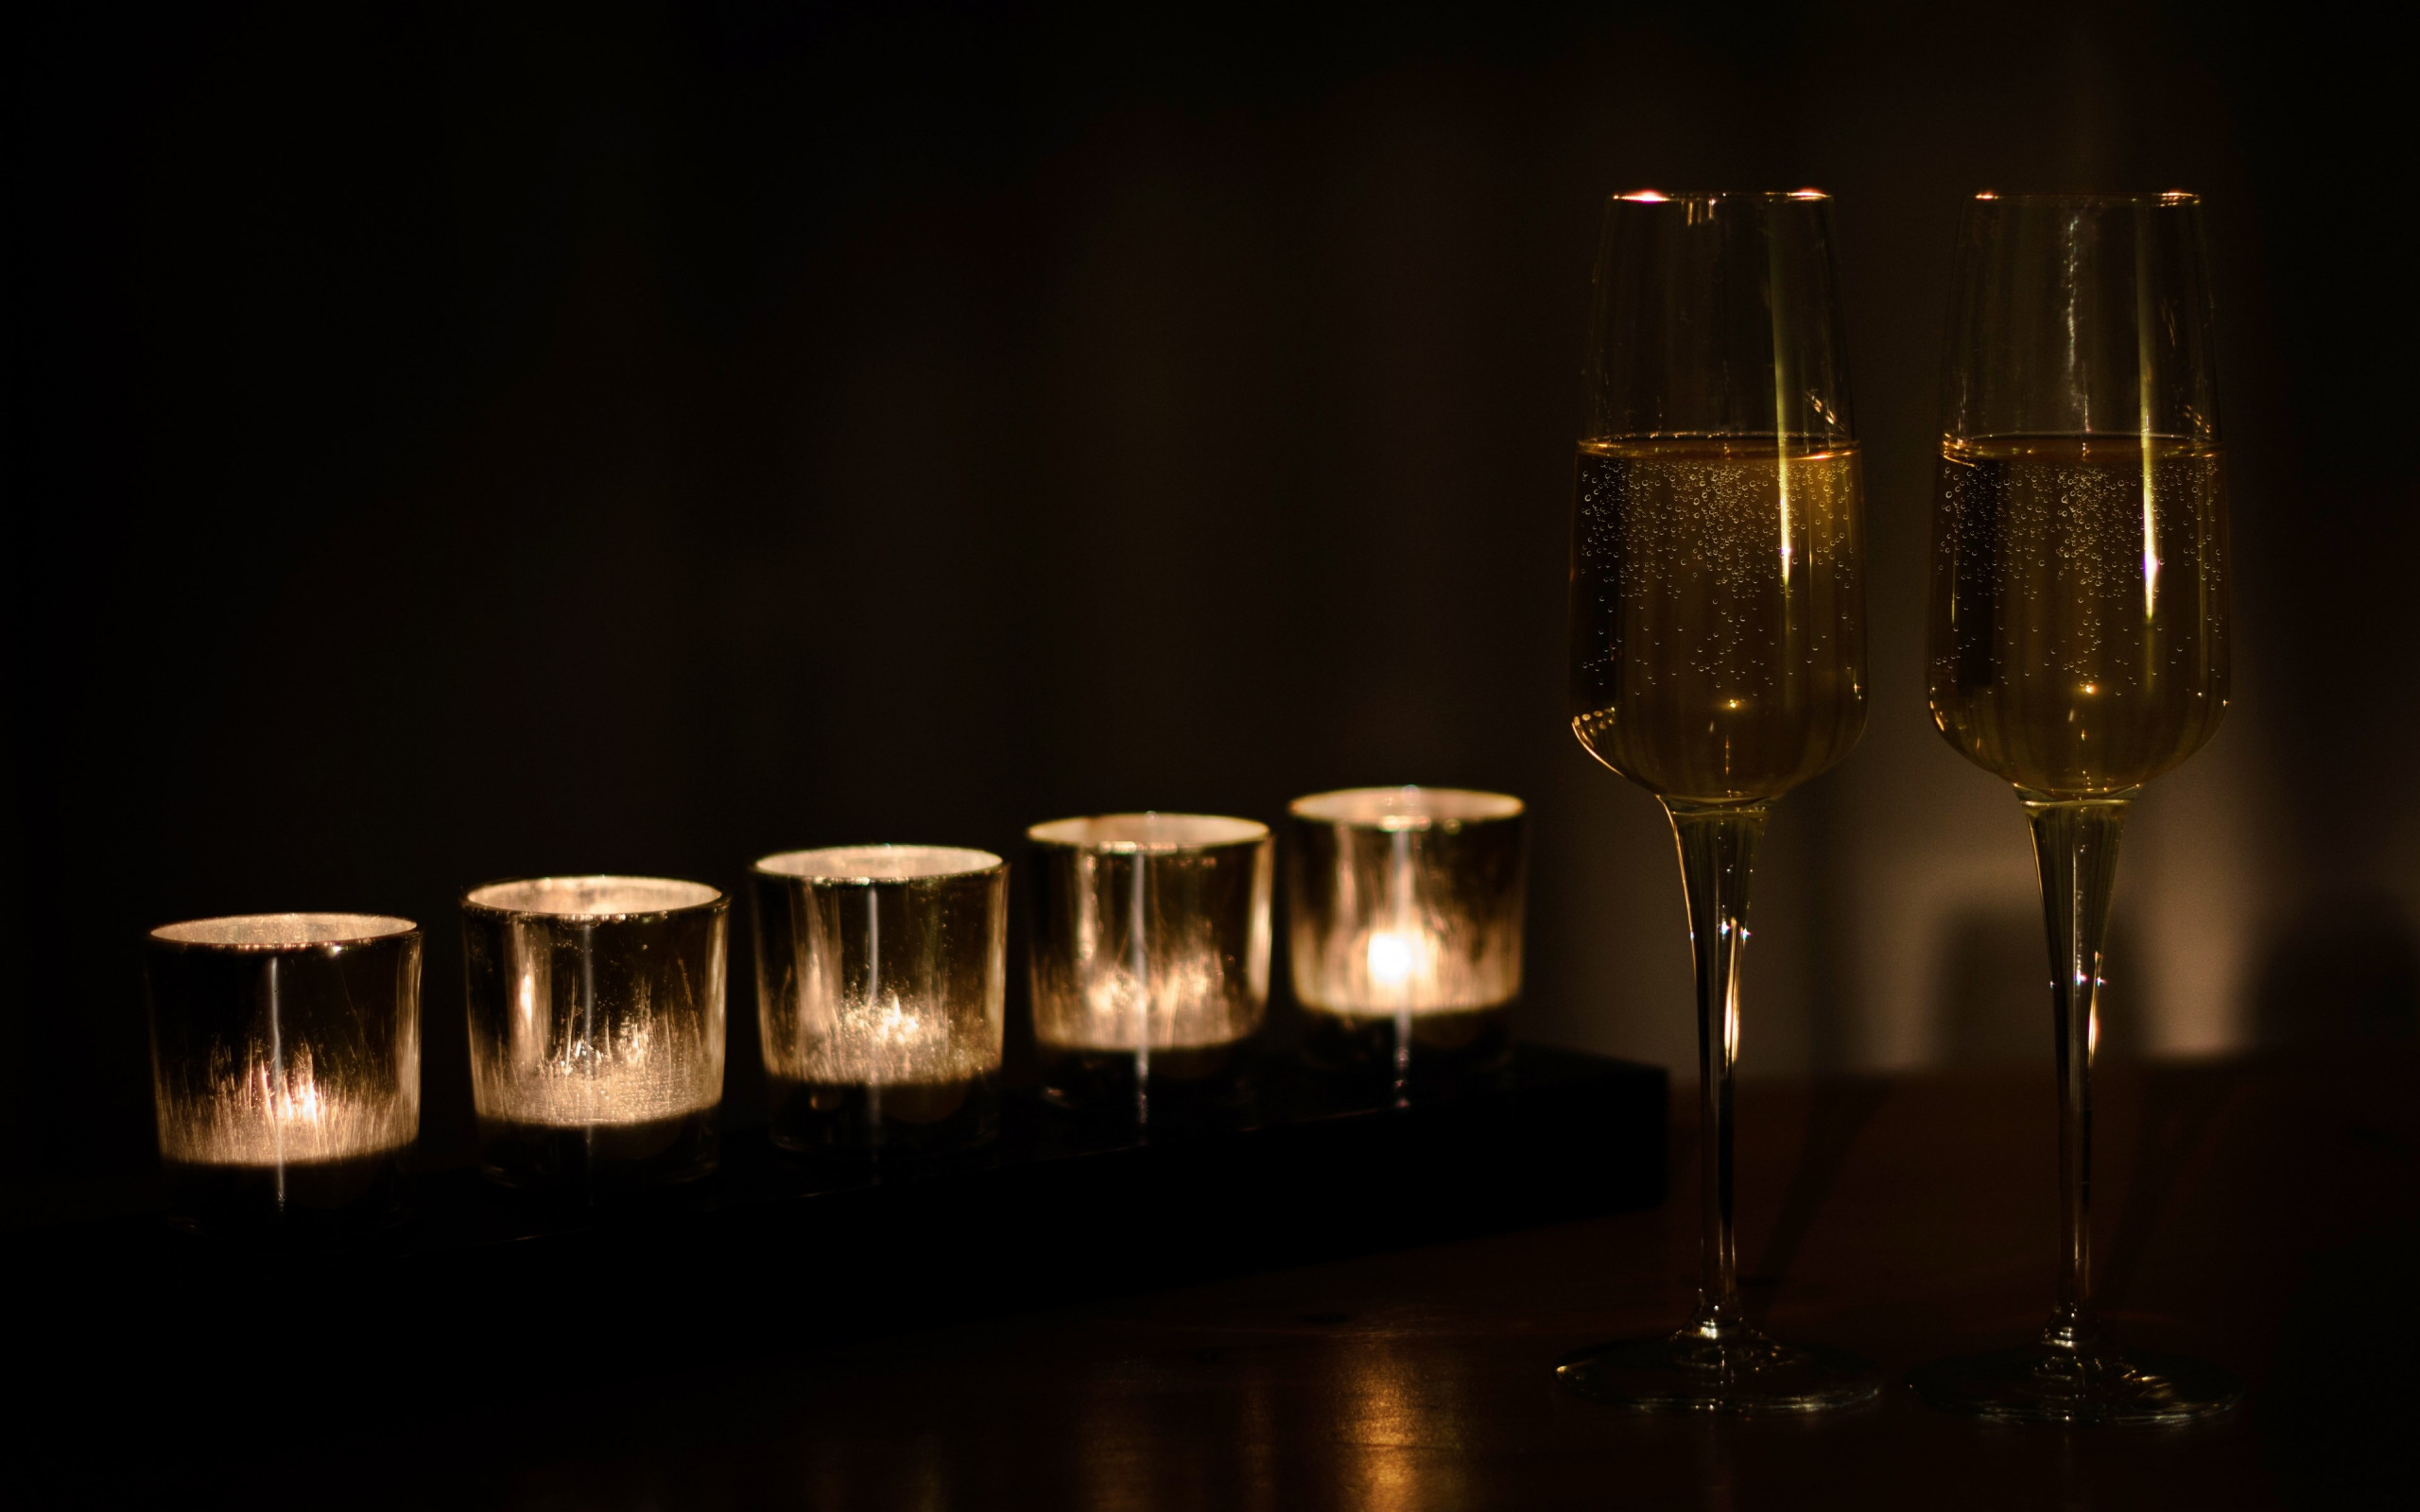 Champagne and candles | 2560x1600 wallpaper